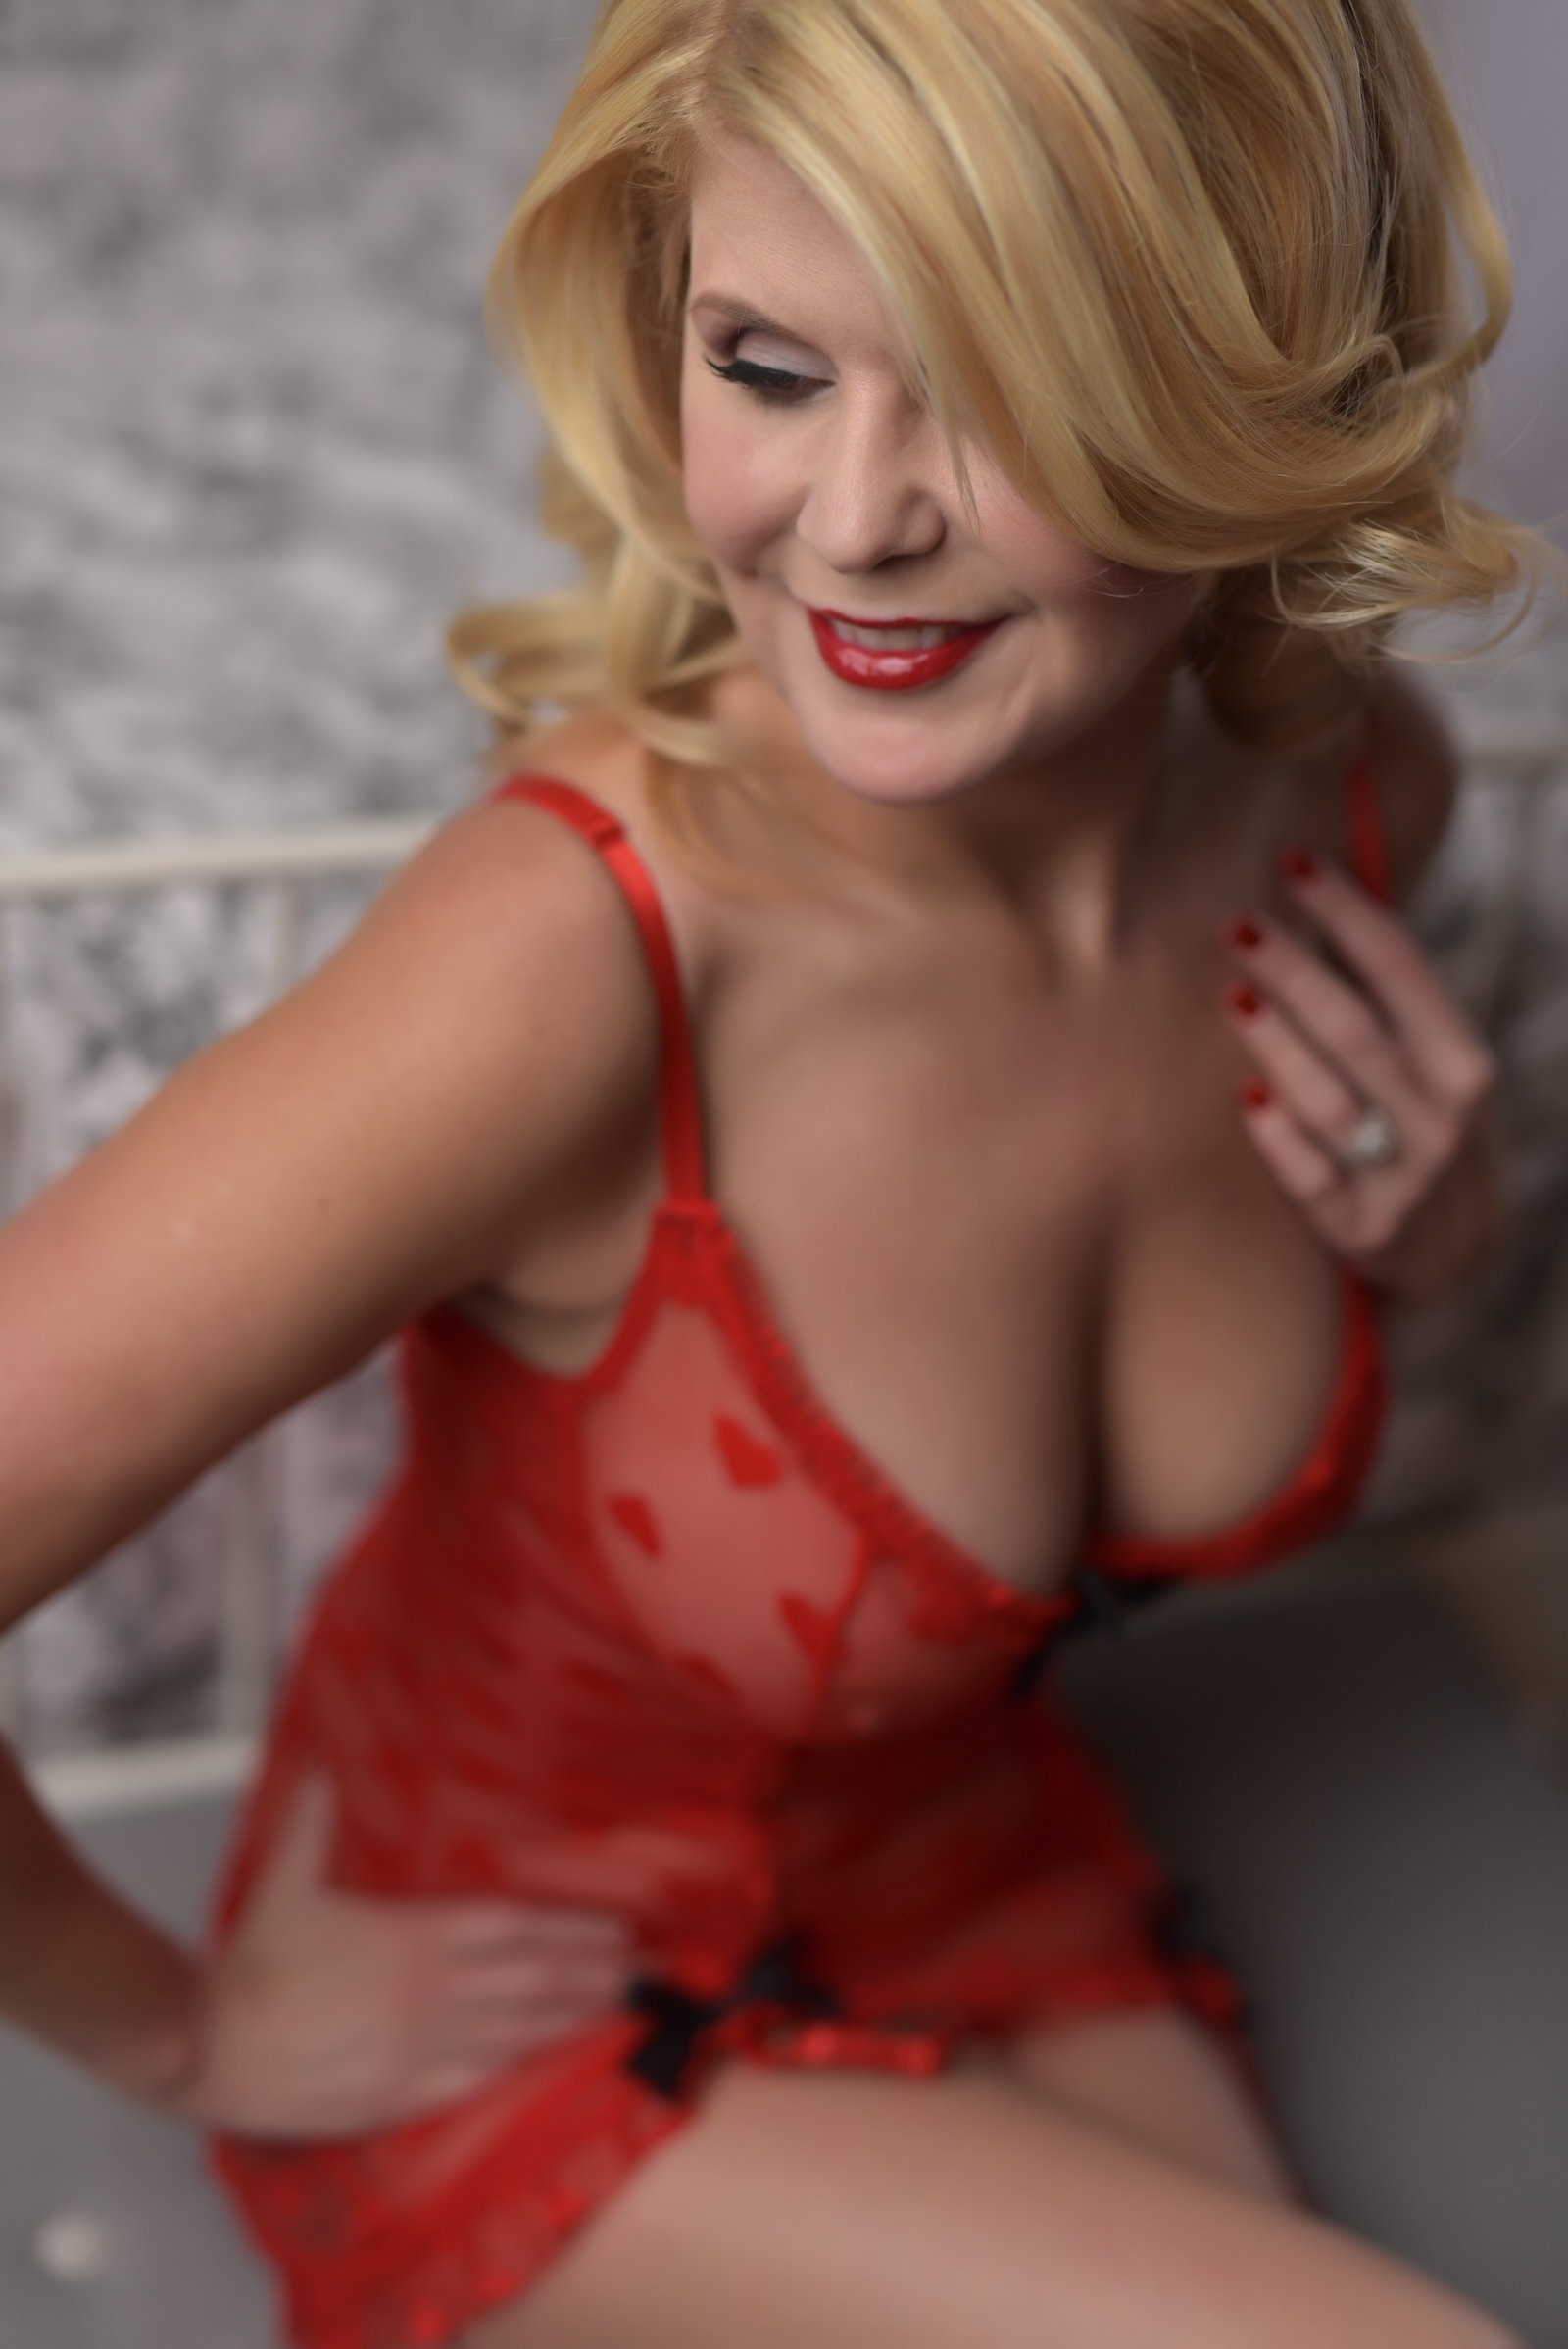 Boudoir Louisville - Boudoir Photography Studio - Lexington, Cincinnati & Indianapolis-644